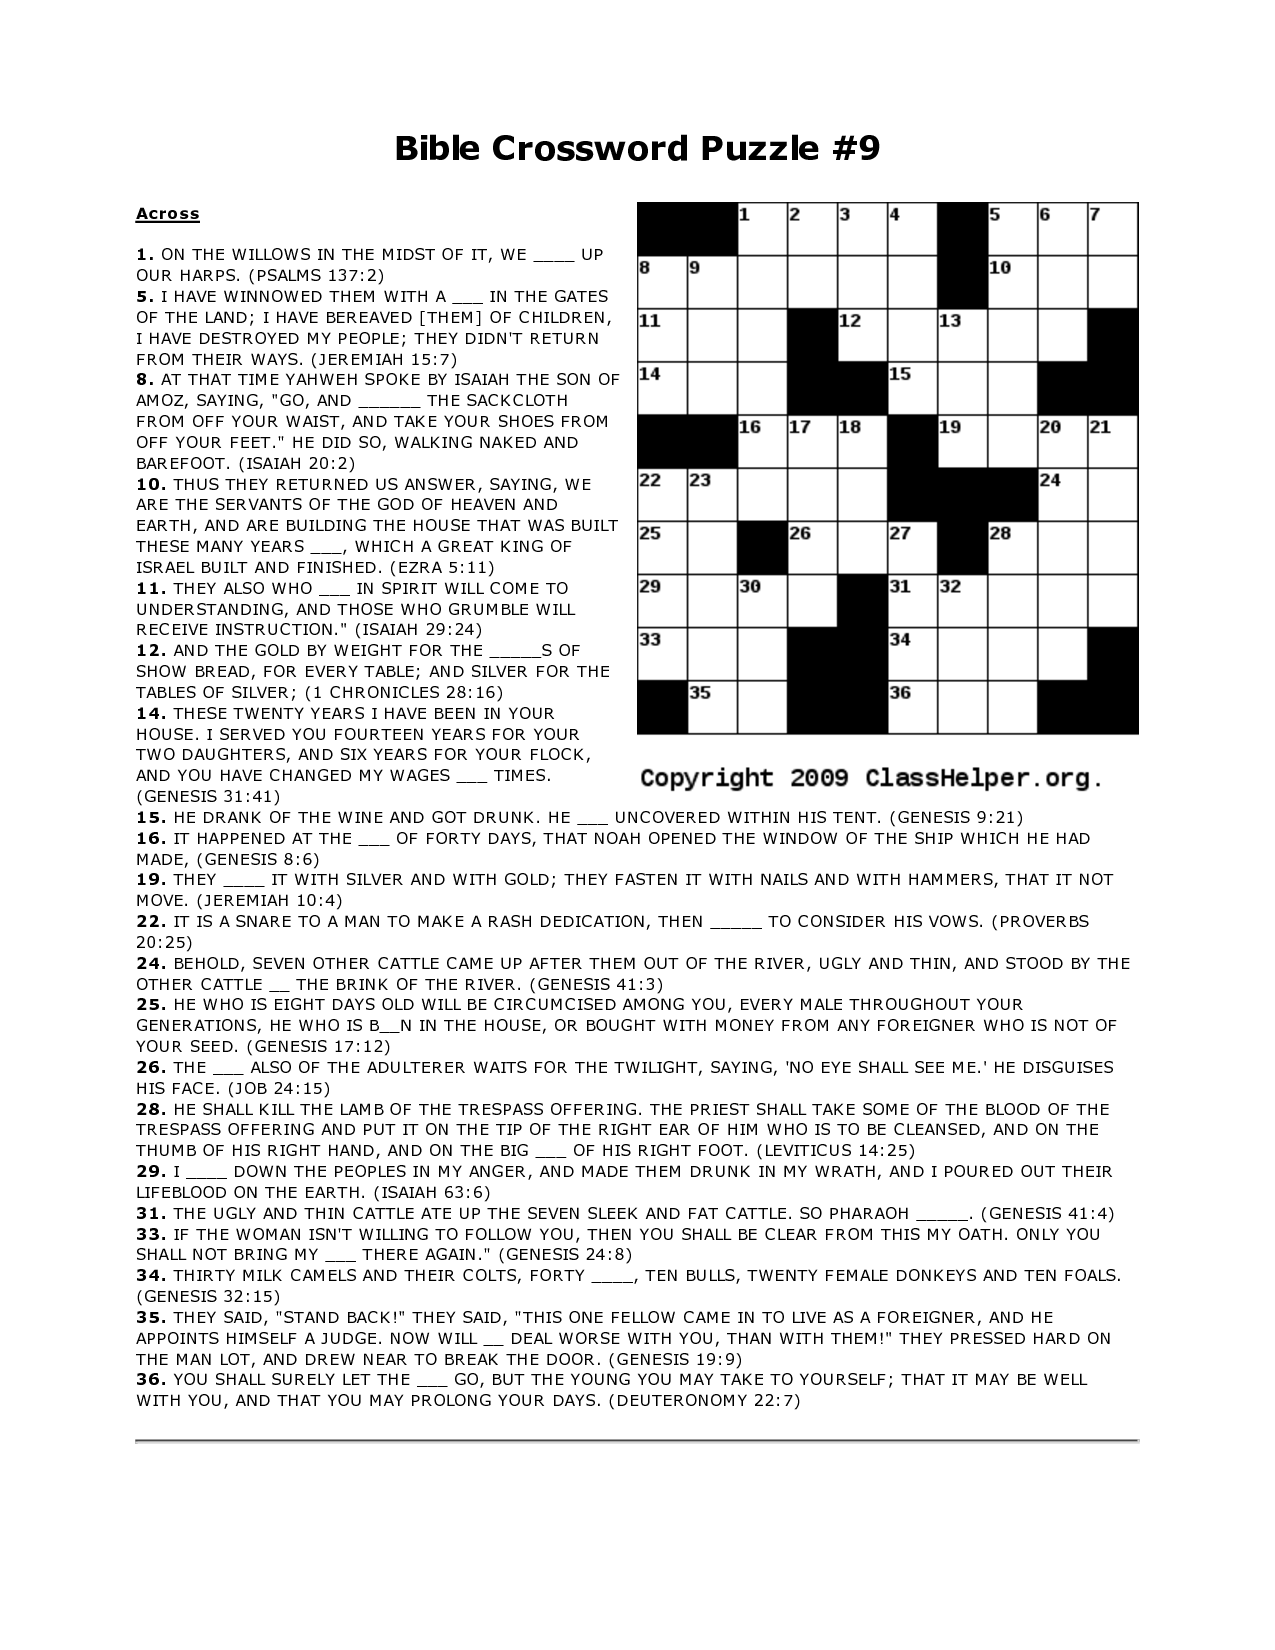 The Best Bible Crossword Puzzles Printable With Answers